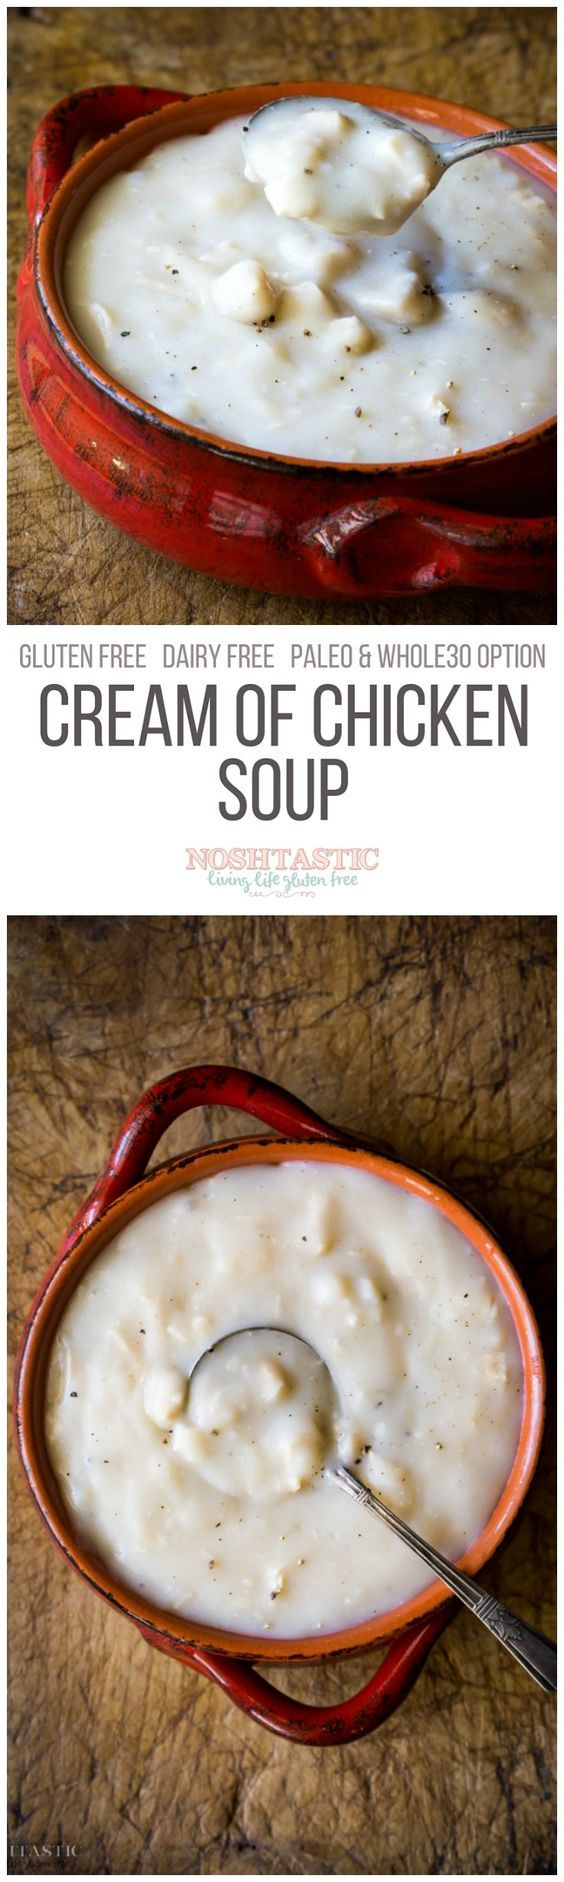 An easy Homemade Gluten Free Cream of Chicken Soup, but without all the additives! Can easily be made Paleo and Whole30